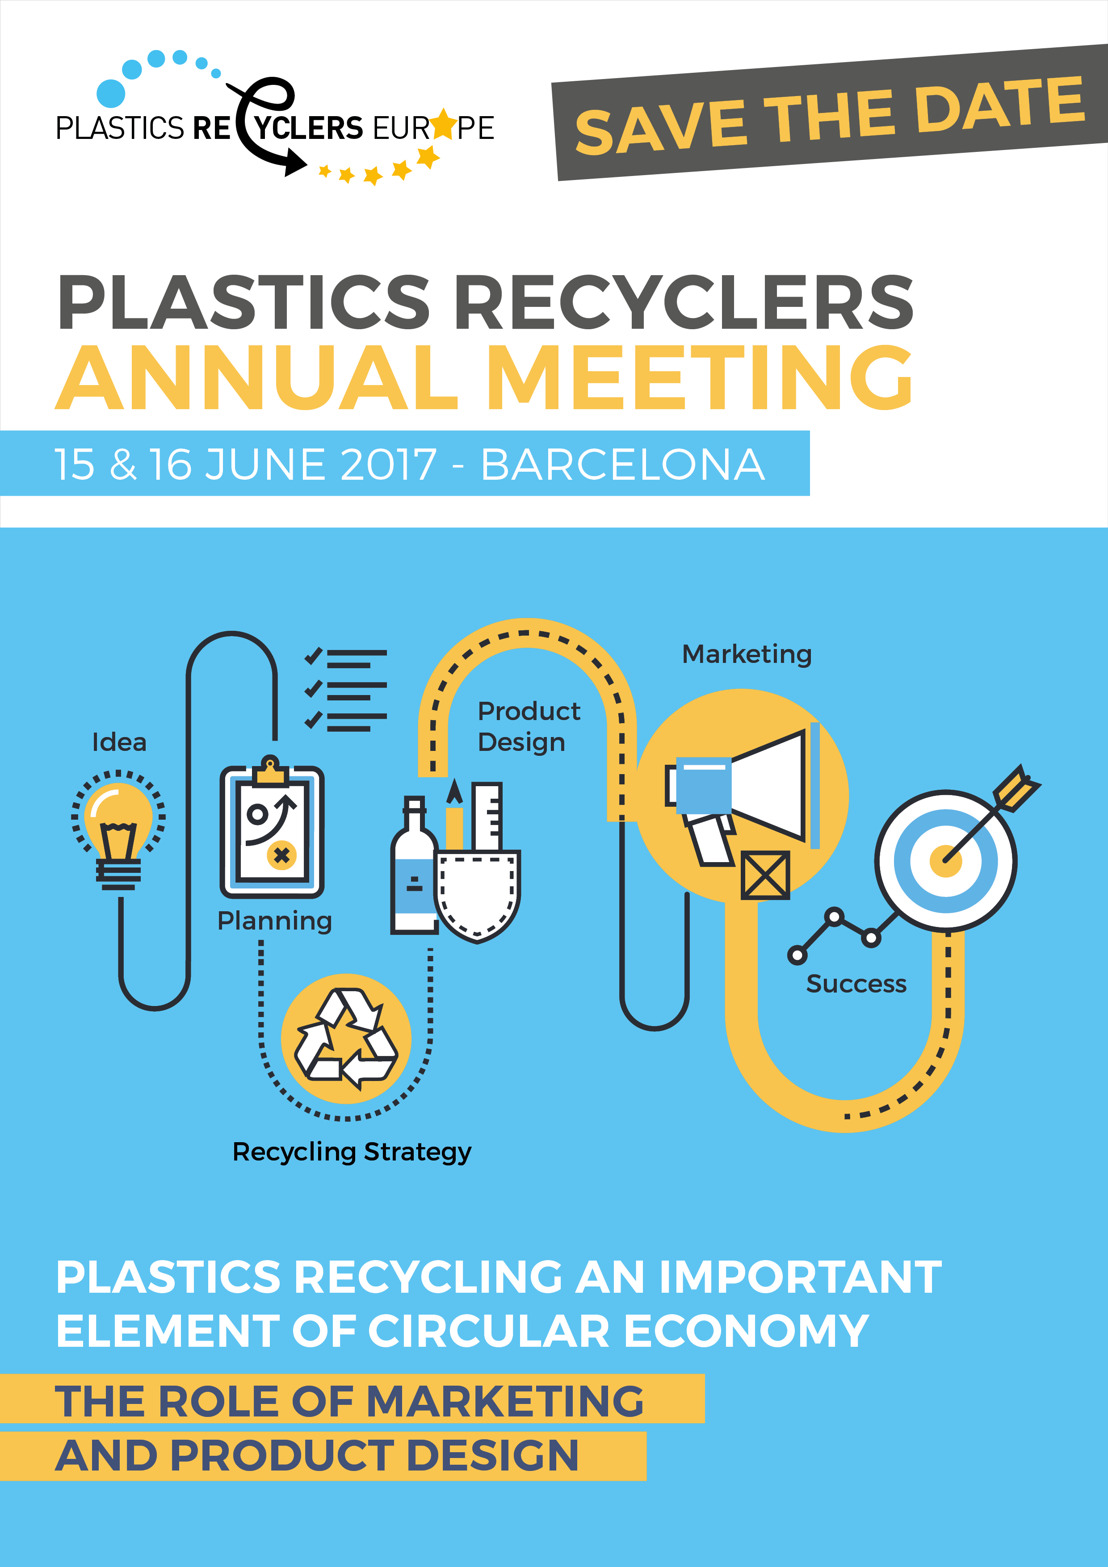 Save the Date! Plastics Recyclers Annual Meeting 2017